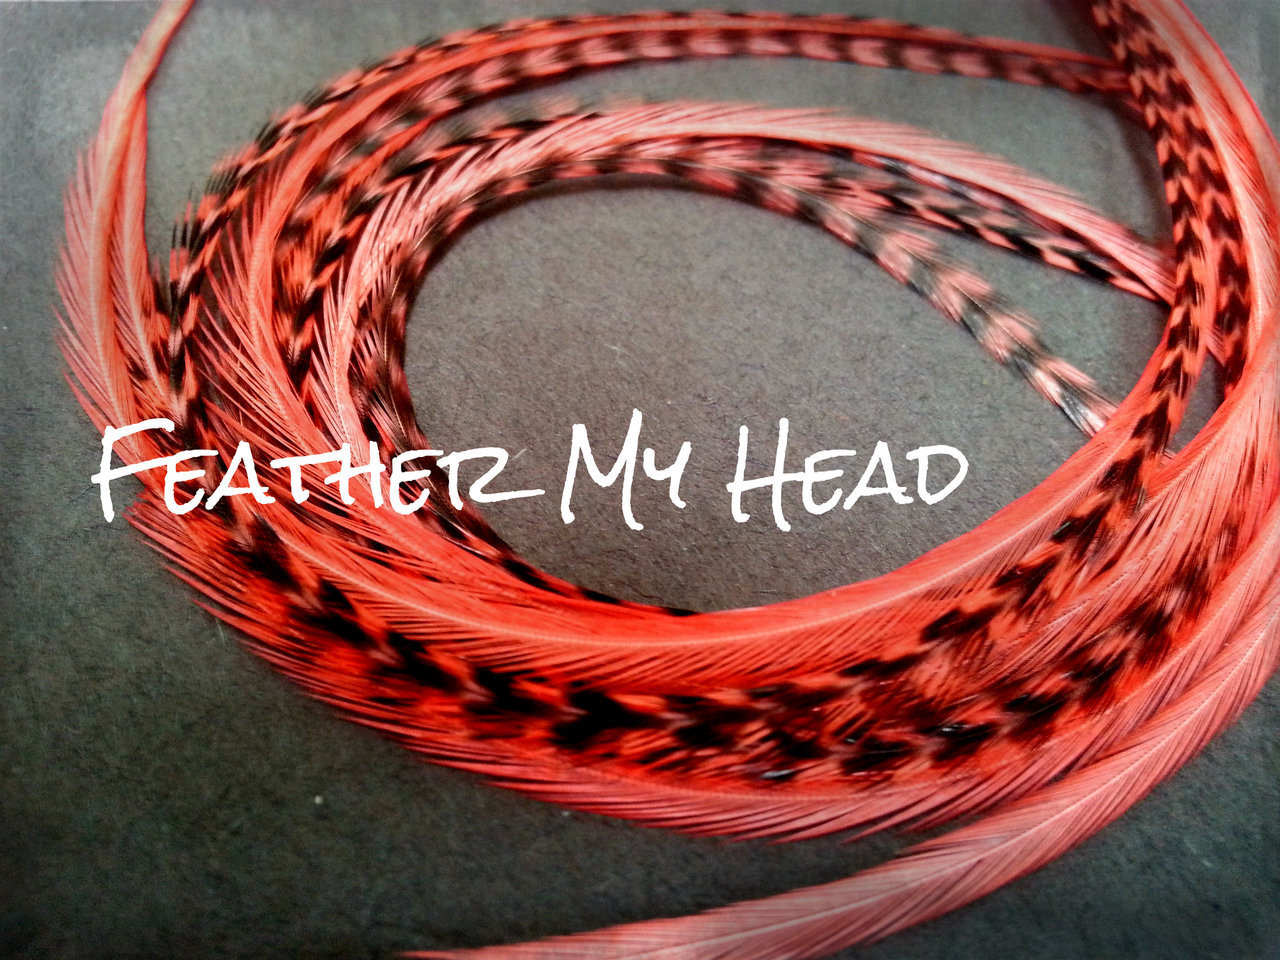 23-30cm Feather Hair Extension 9-12 In Long Grizzly//Solid 10 Pc Carmel